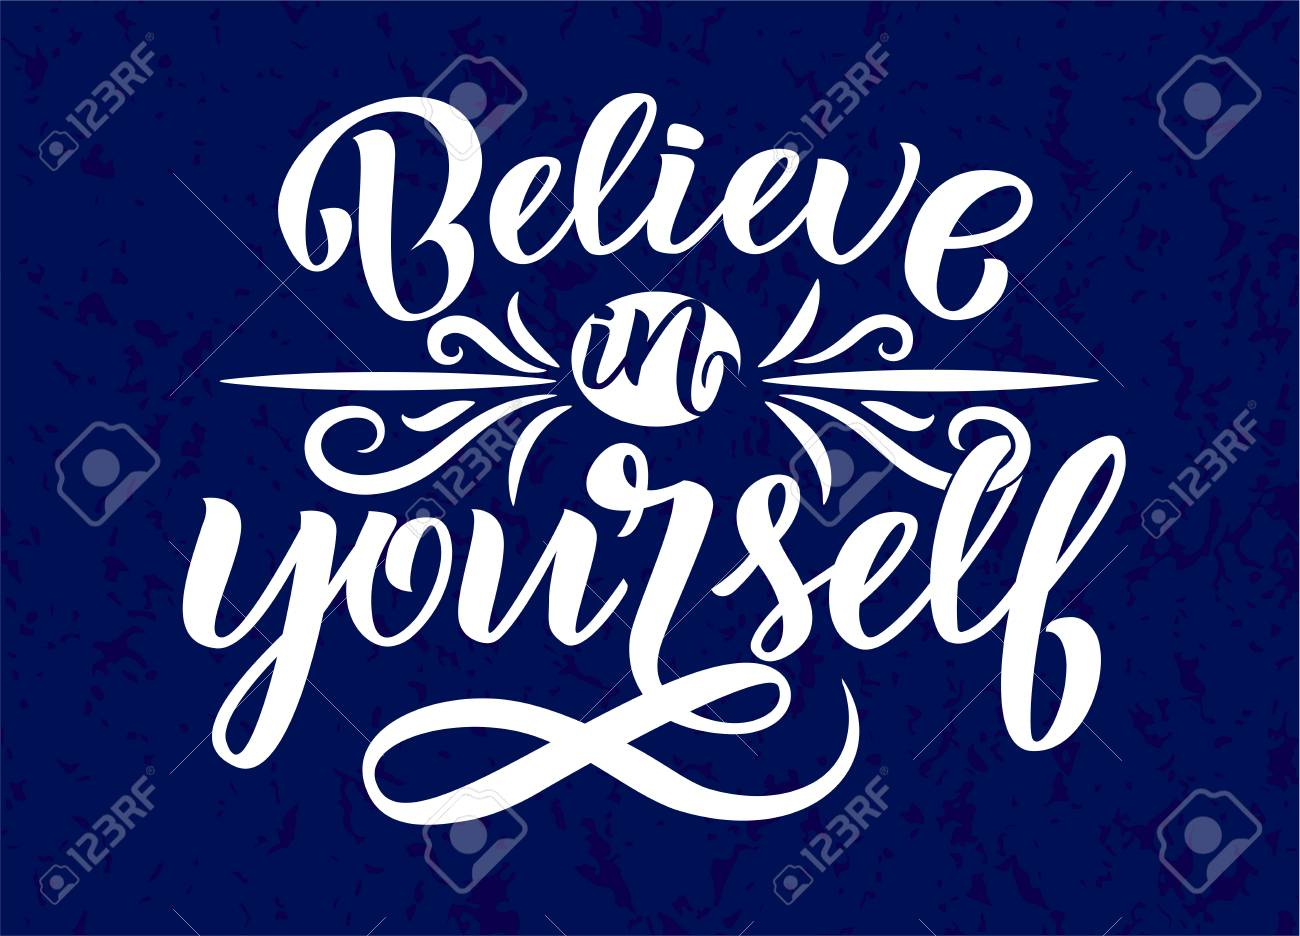 Believe in yourself inspirational quote handwritten calligraphy